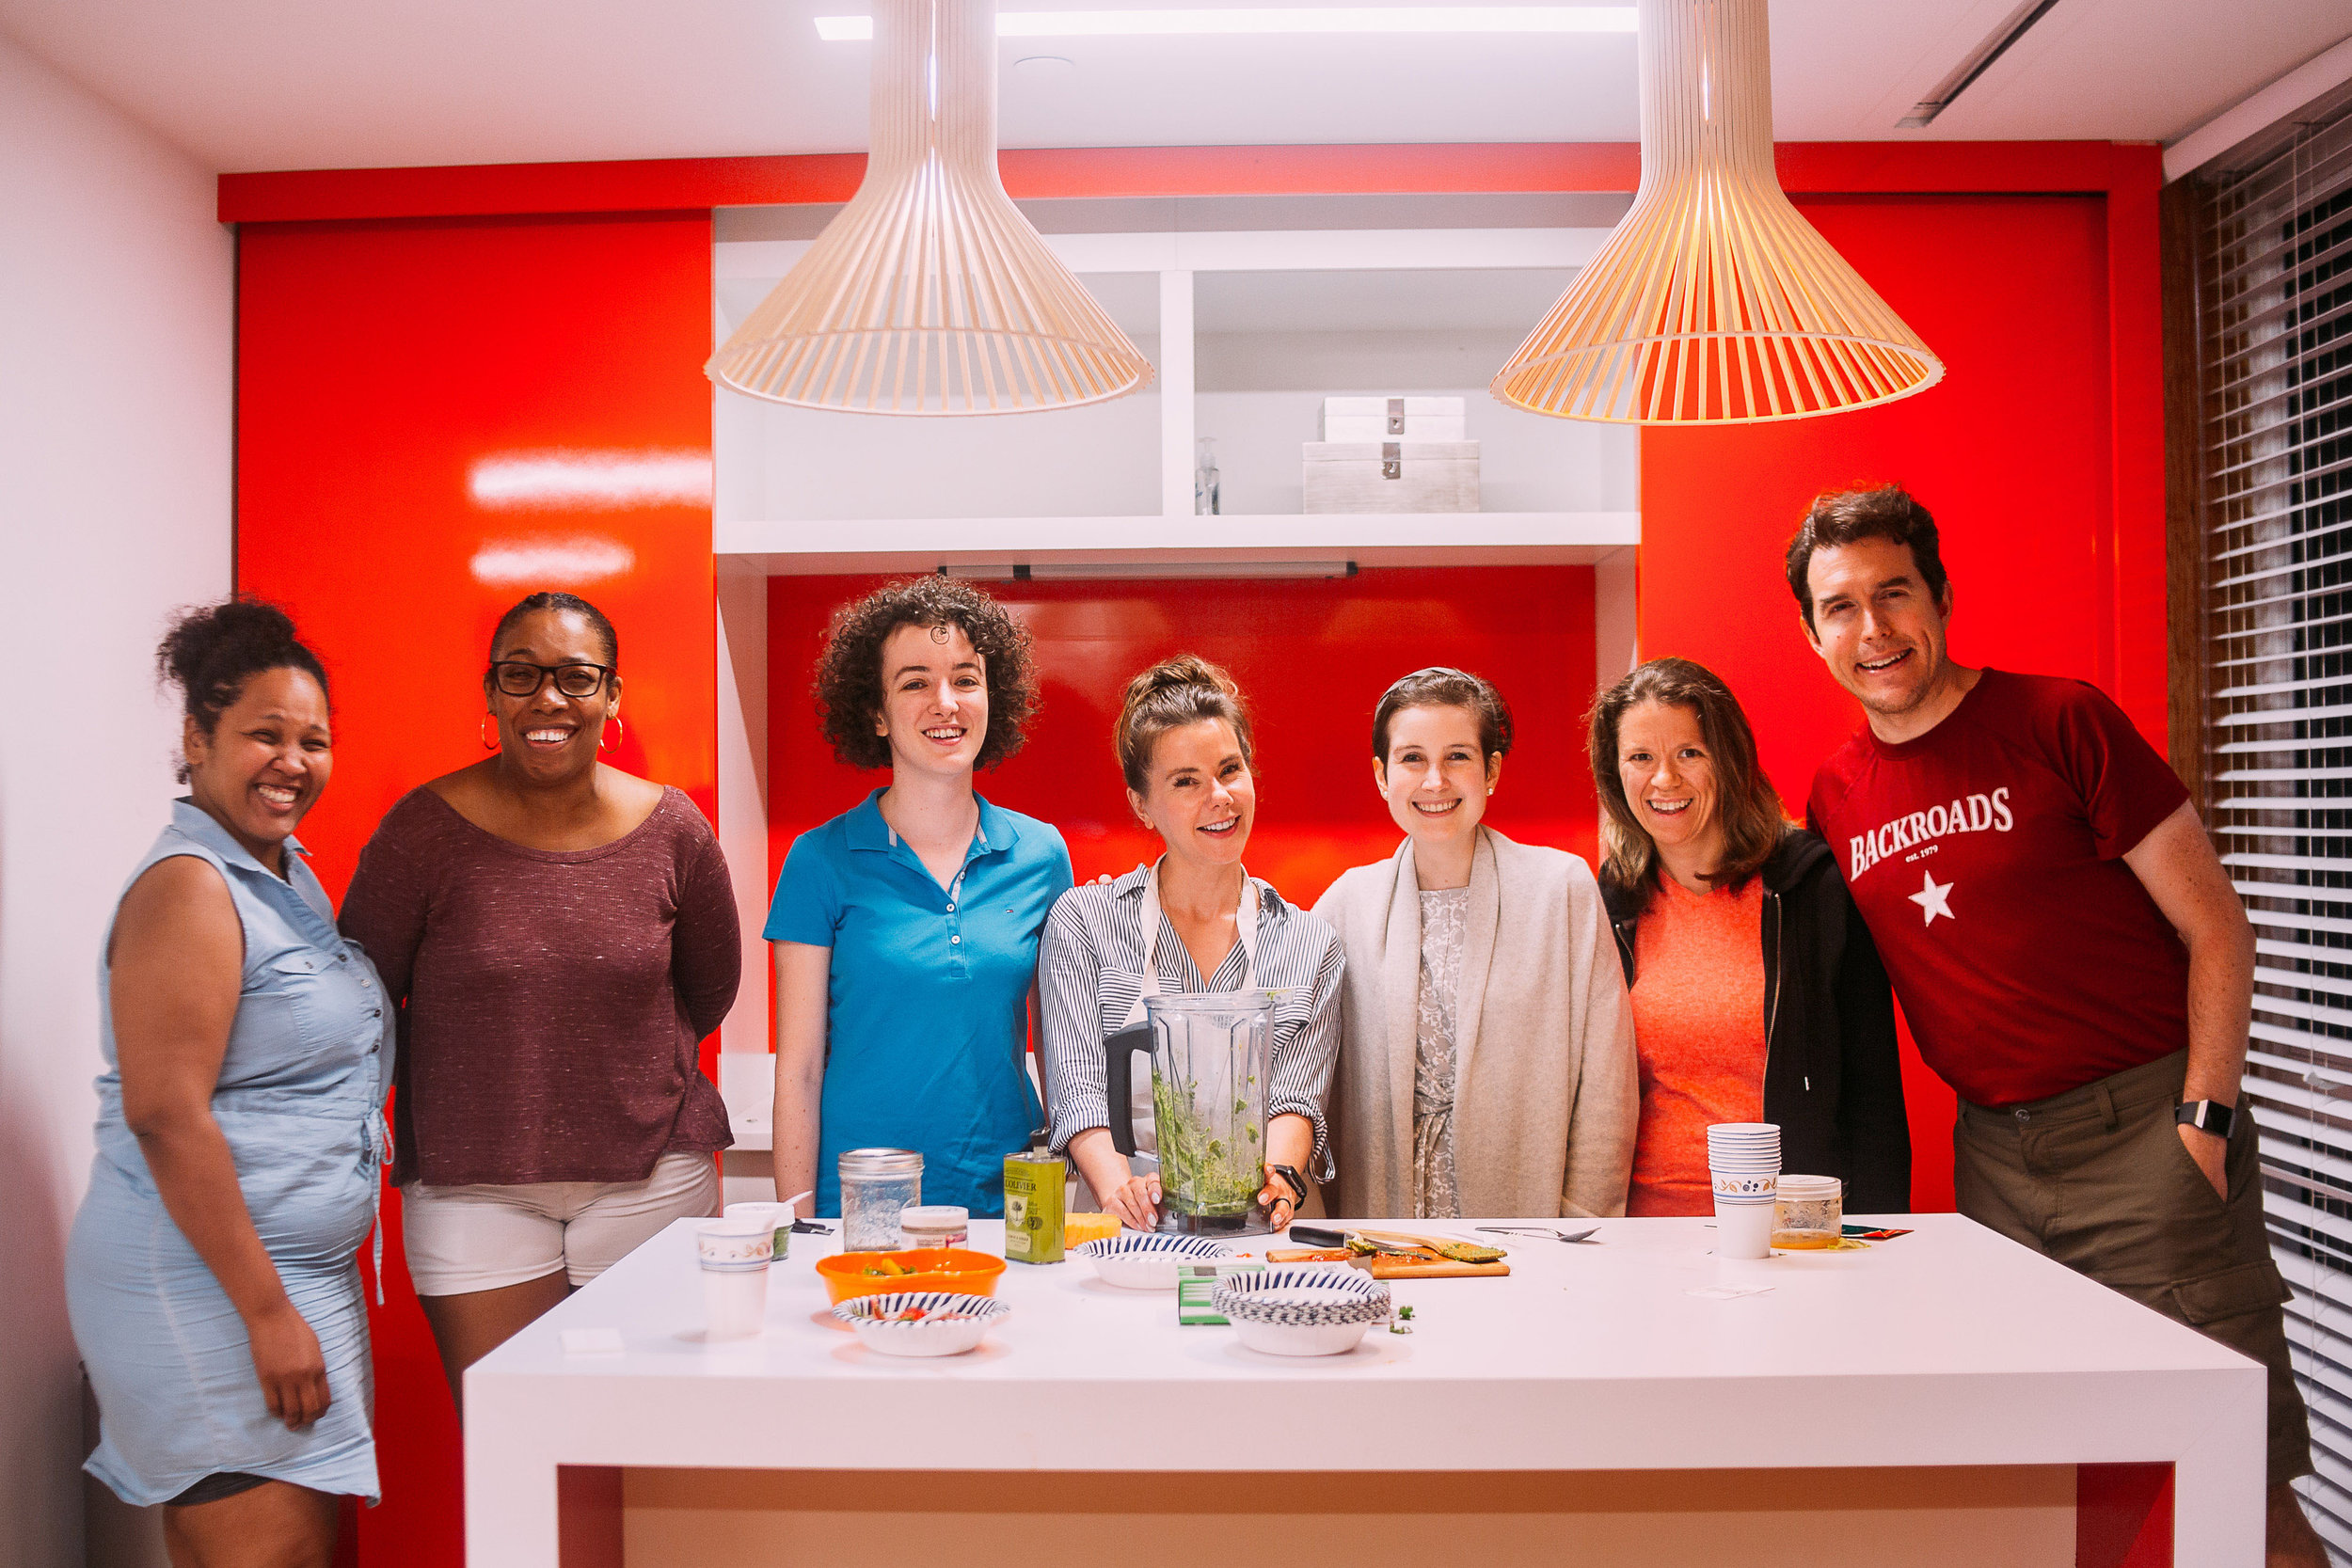 Plate Next Door partners with Cobu to provide culture-focused cooking lessons for residents, everything from sushi to dumplings to Caribbean jerk chicken!